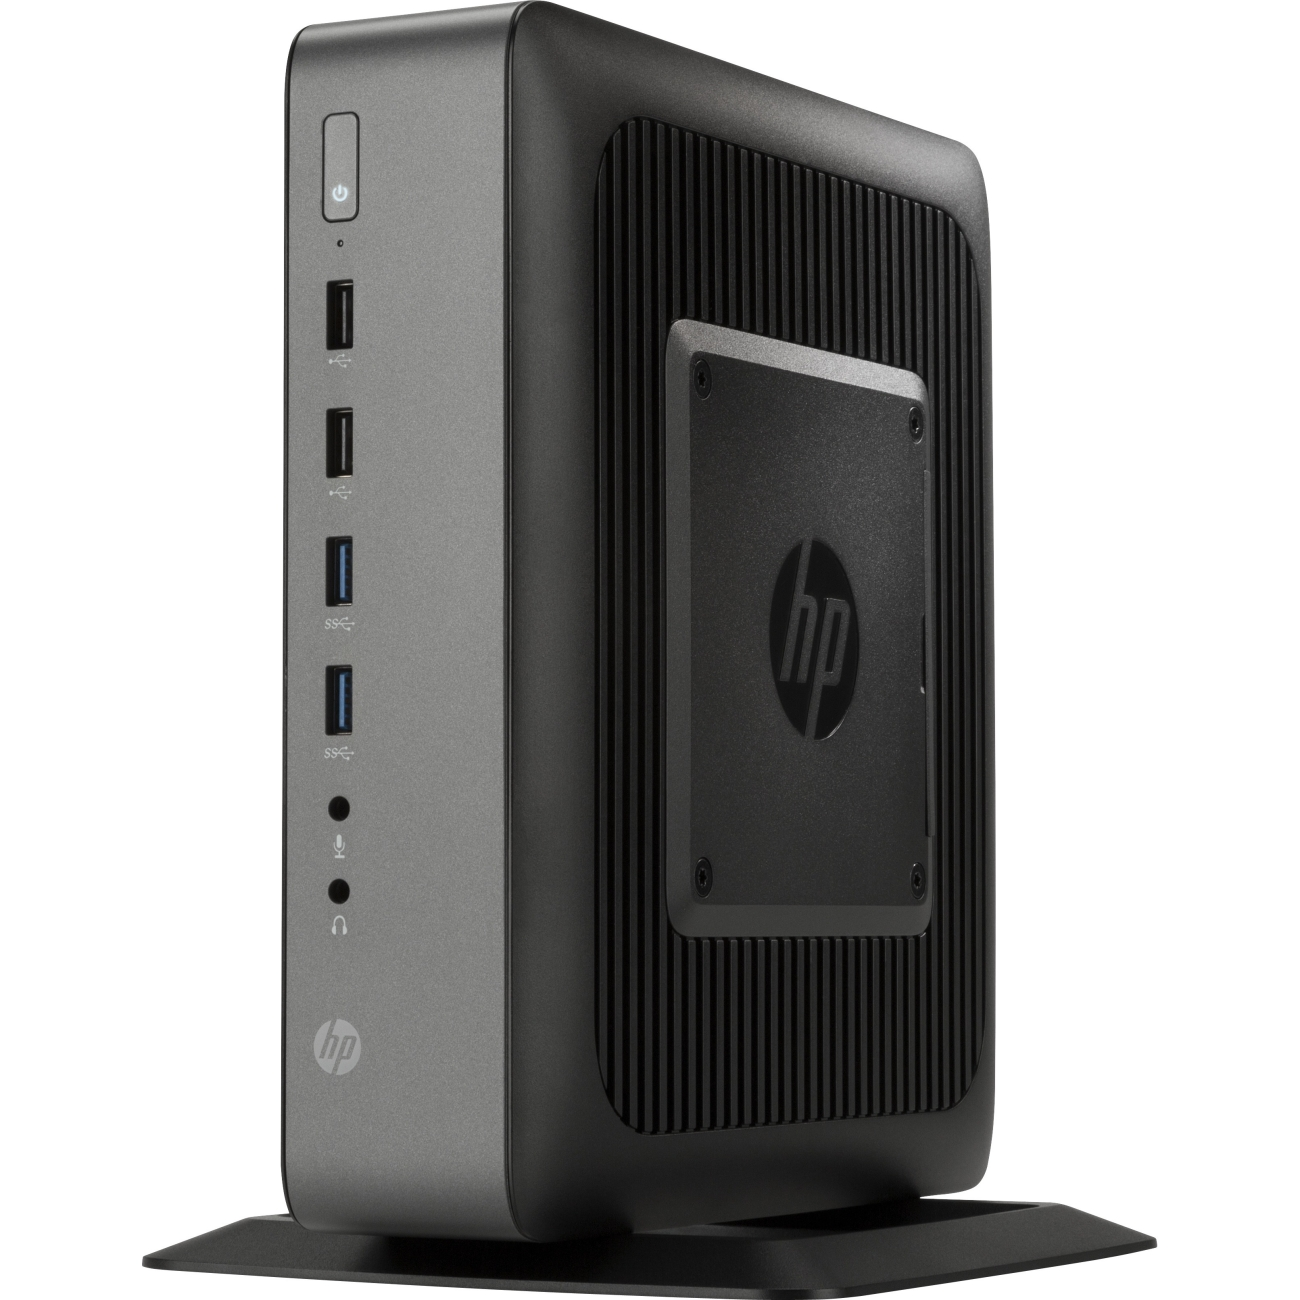 Hp Thin Client - Amd G-series Gx-420ca Quad-core [4 Core] 2 Ghz - 8 Gb Ram Ddr3l Sdram - 64 Gb Flash - Amd Radeon Hd 8400e - Gigabit Ethernet - Windows 10 - Displayport - Vga - Network (v2v63ut-aba)